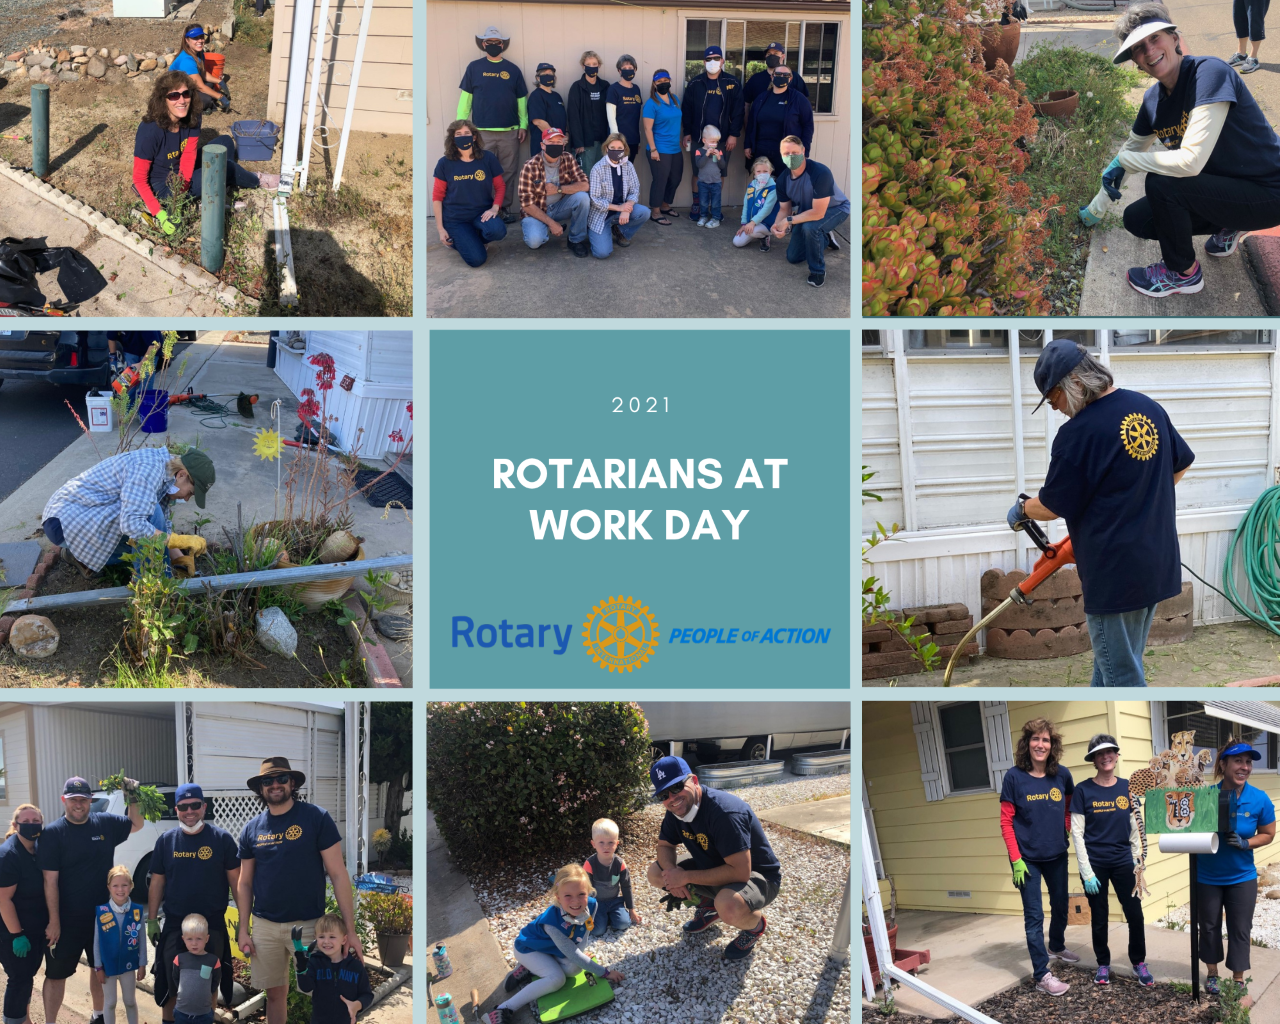 2021 Rotarians at Work Day